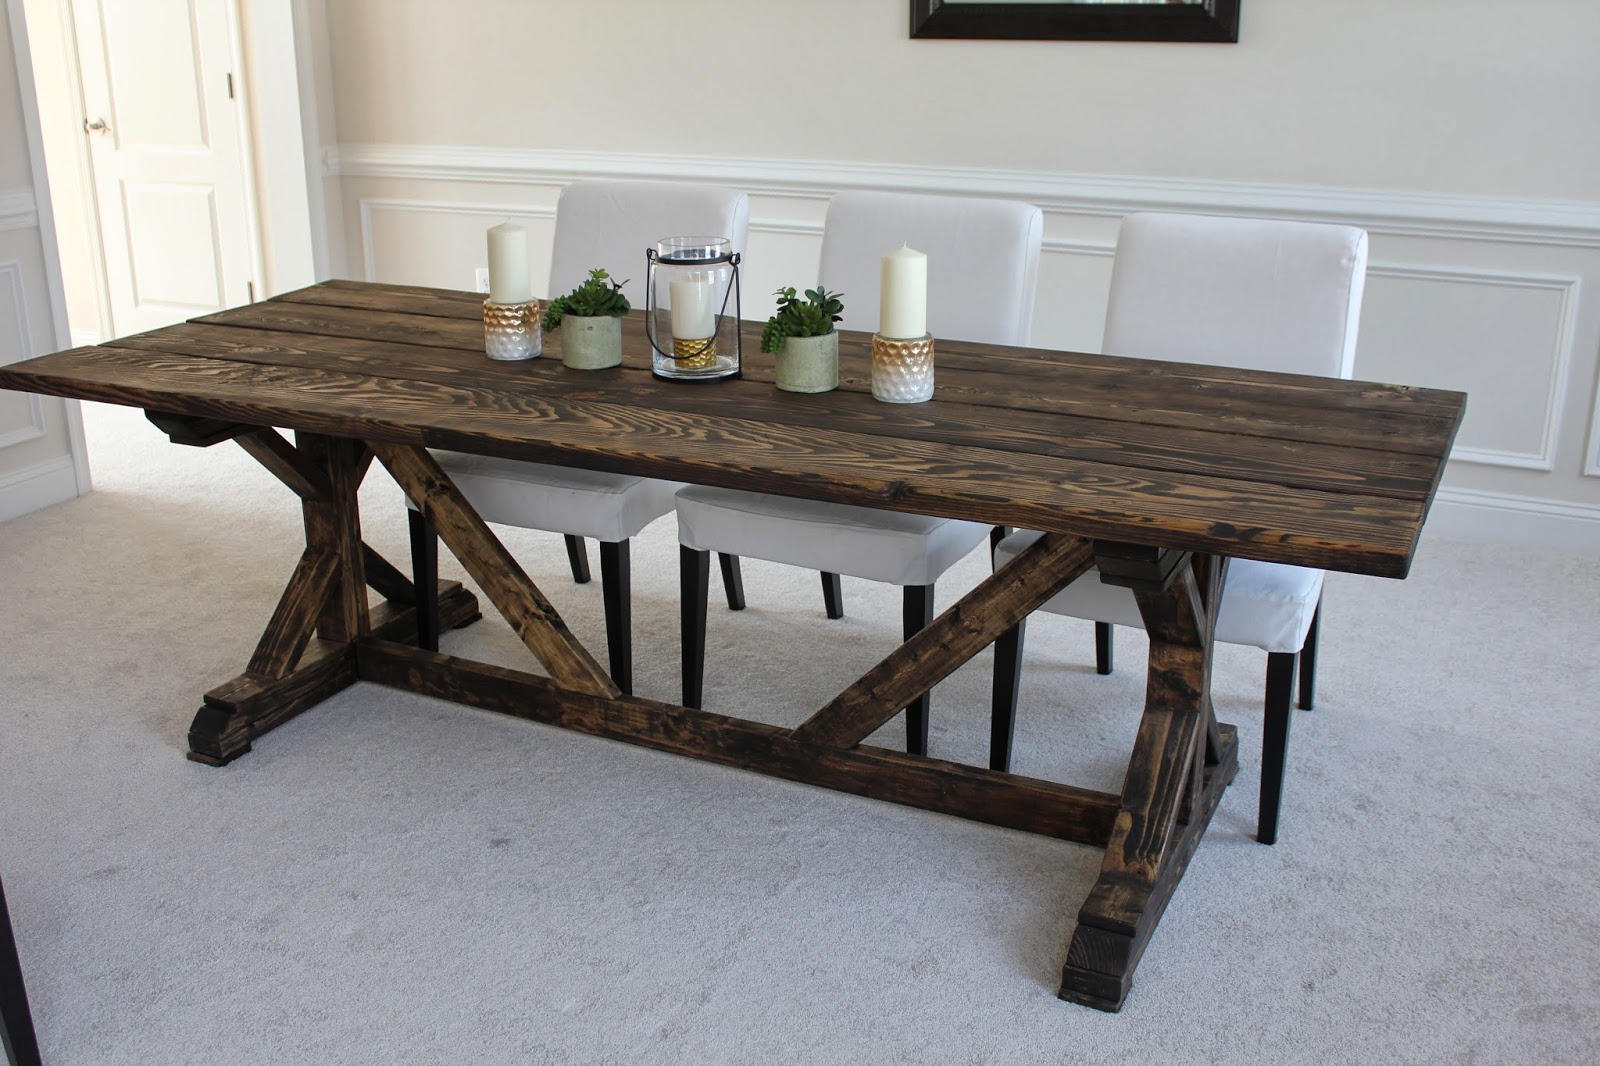 Easy diy remodel projects floor stain farmhouse style for Breakfast table plans